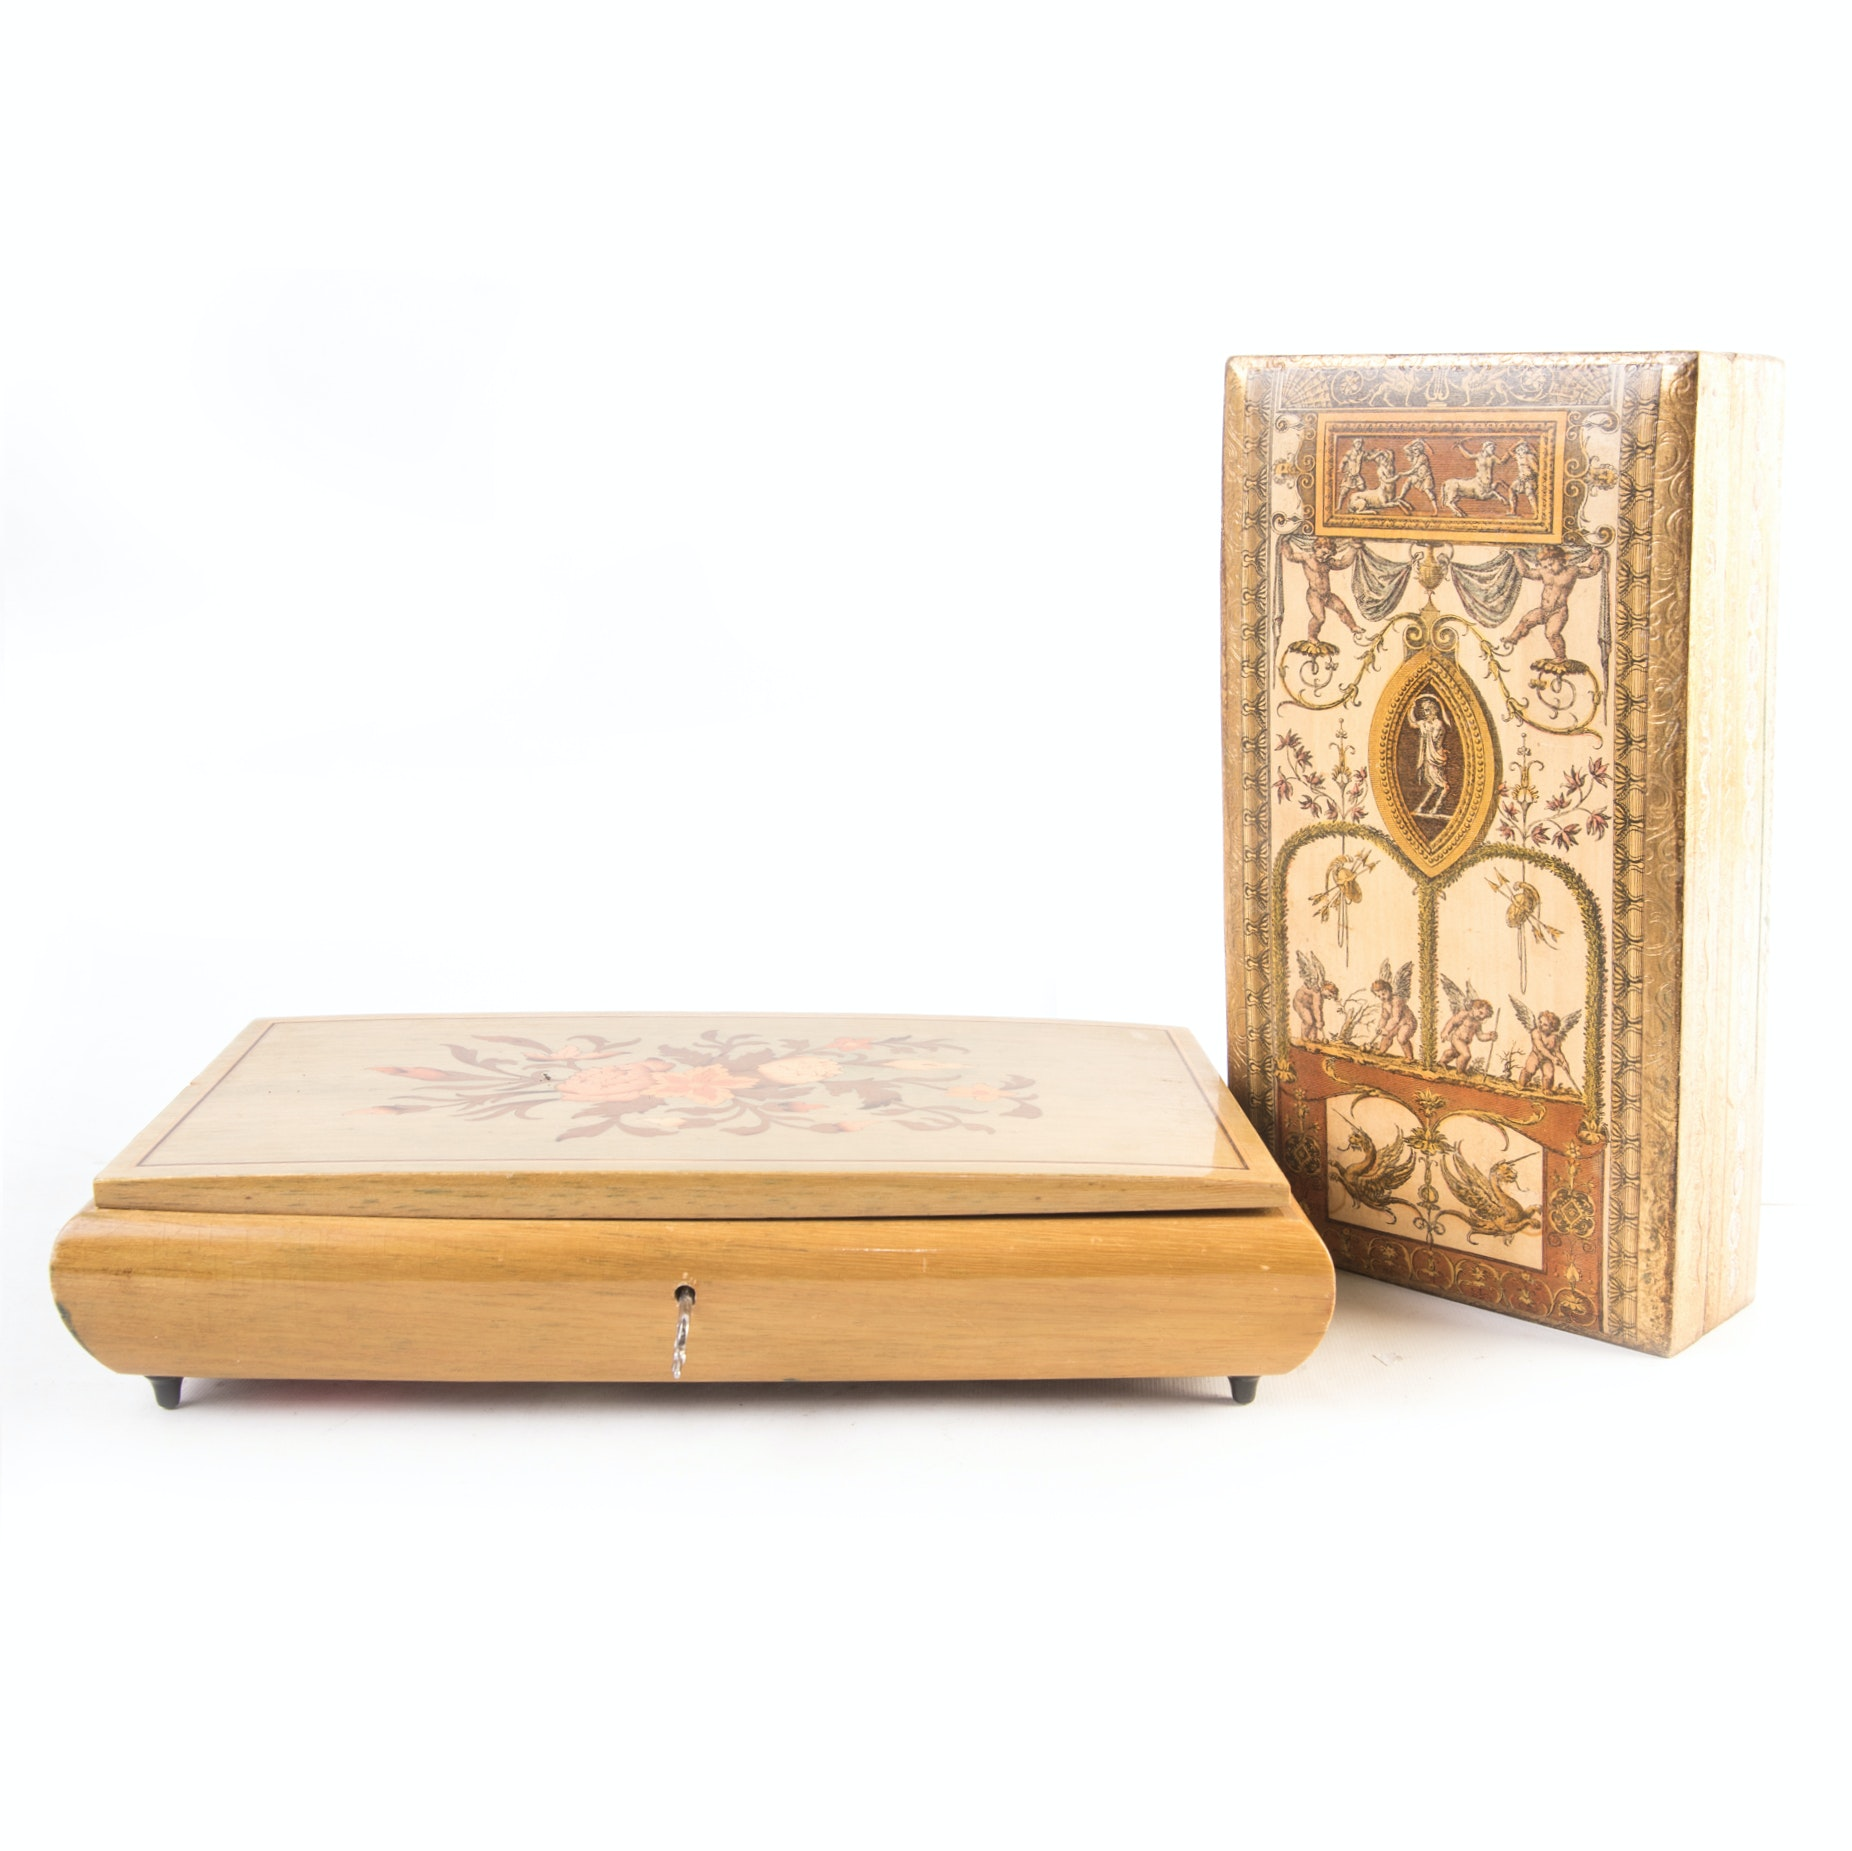 Wooden Italian Trinket Boxes Featuring Reuge Music Box